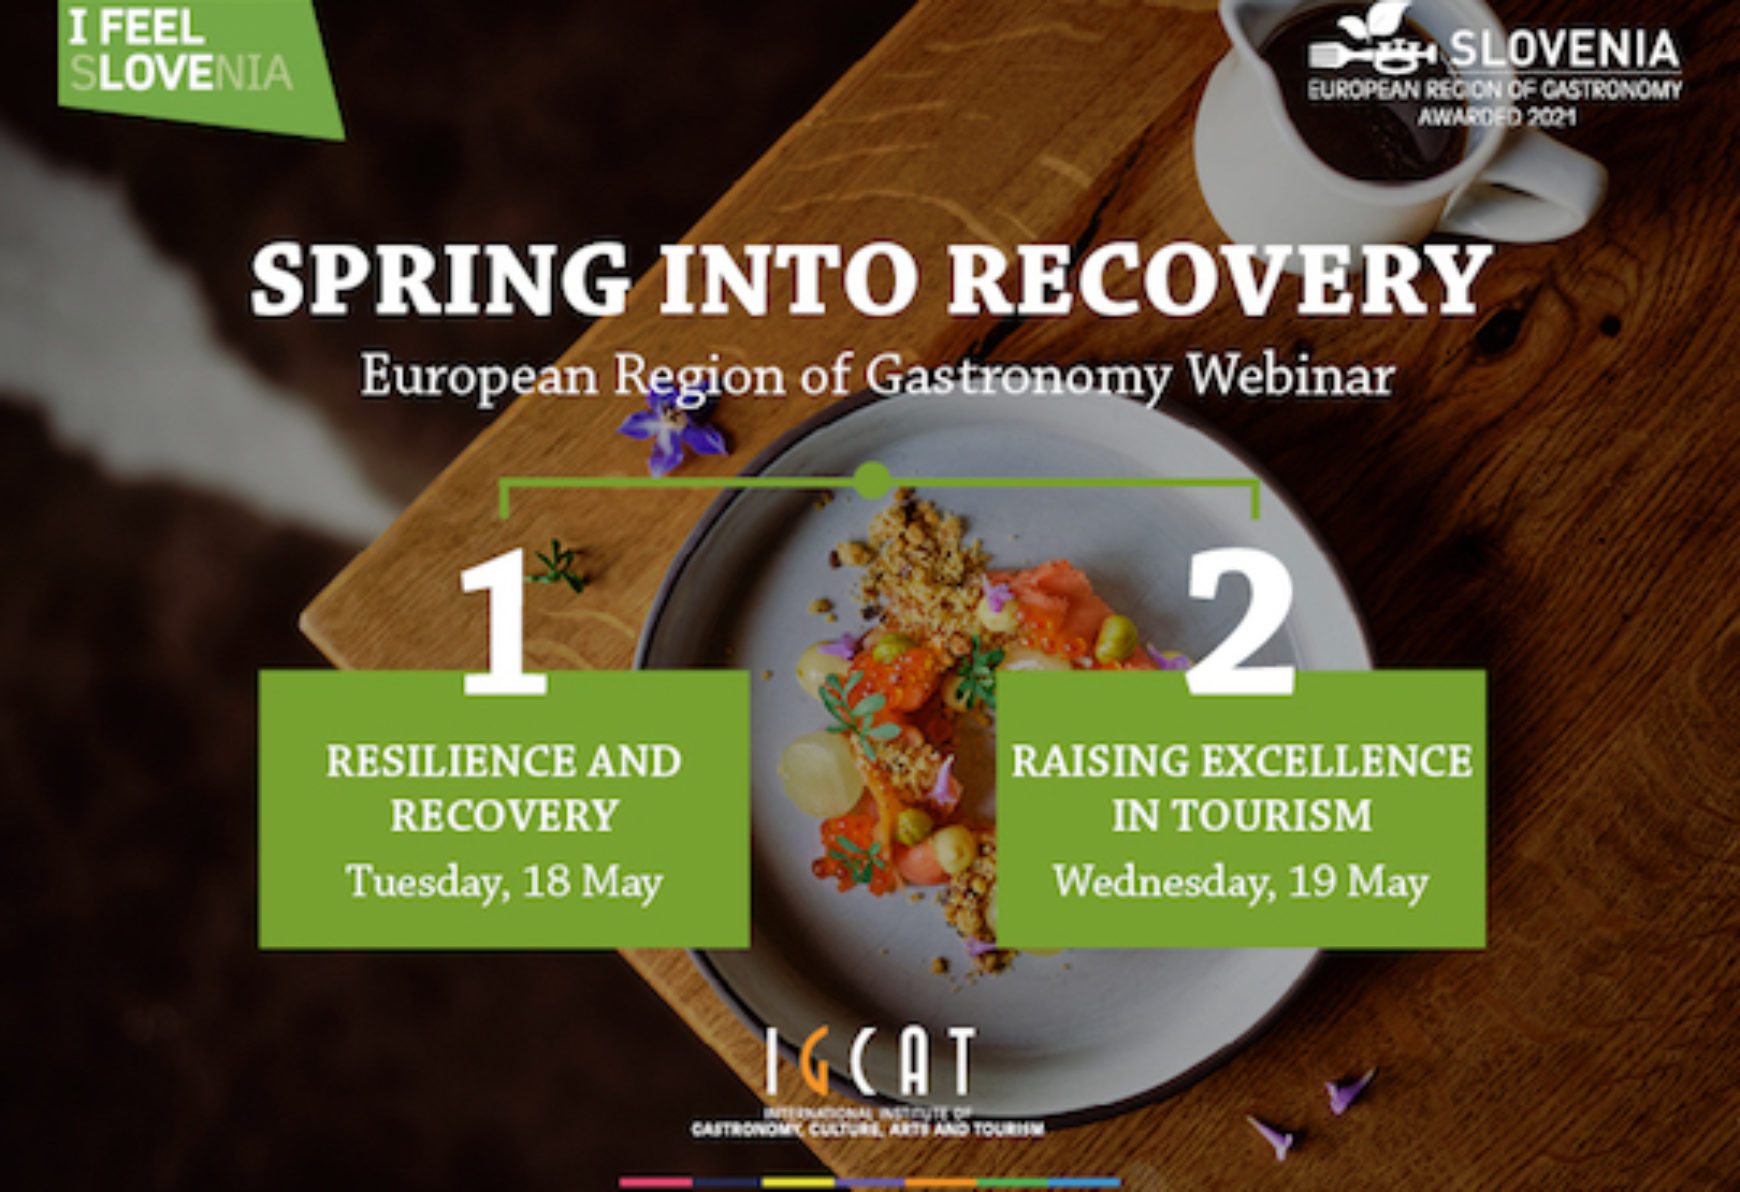 Creating cross-sectoral connections to support sustainable recovery